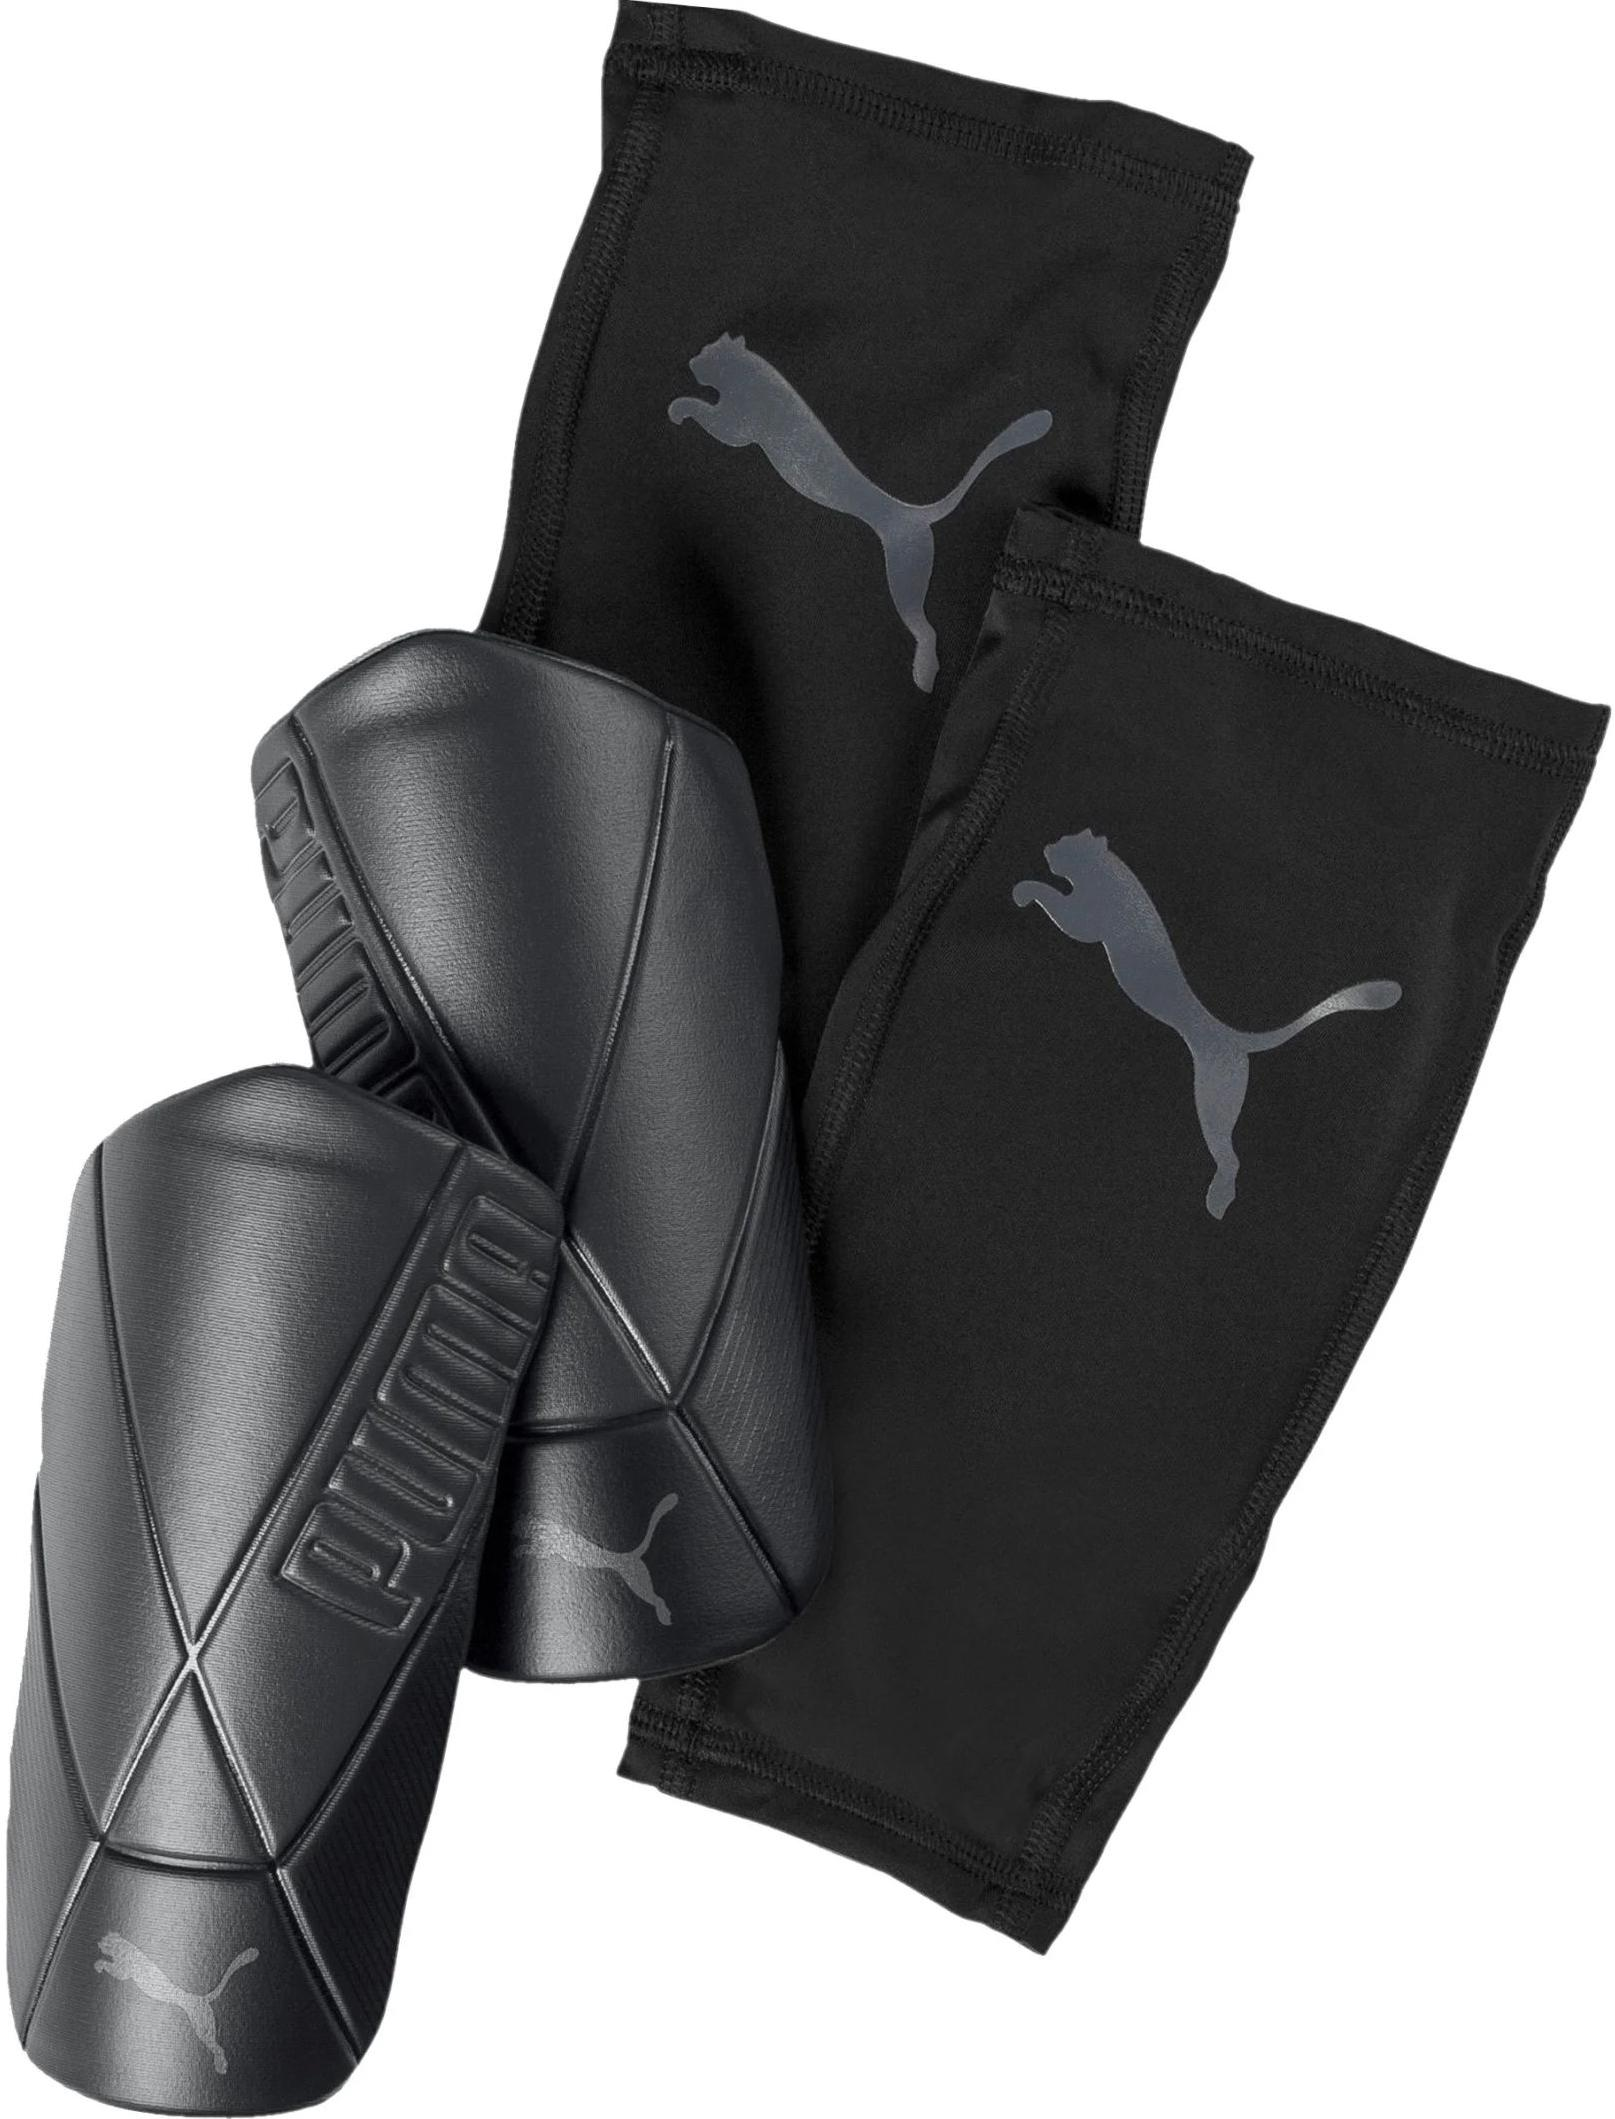 Aparatori Puma ftblNXT Ultimate Flex schin guards